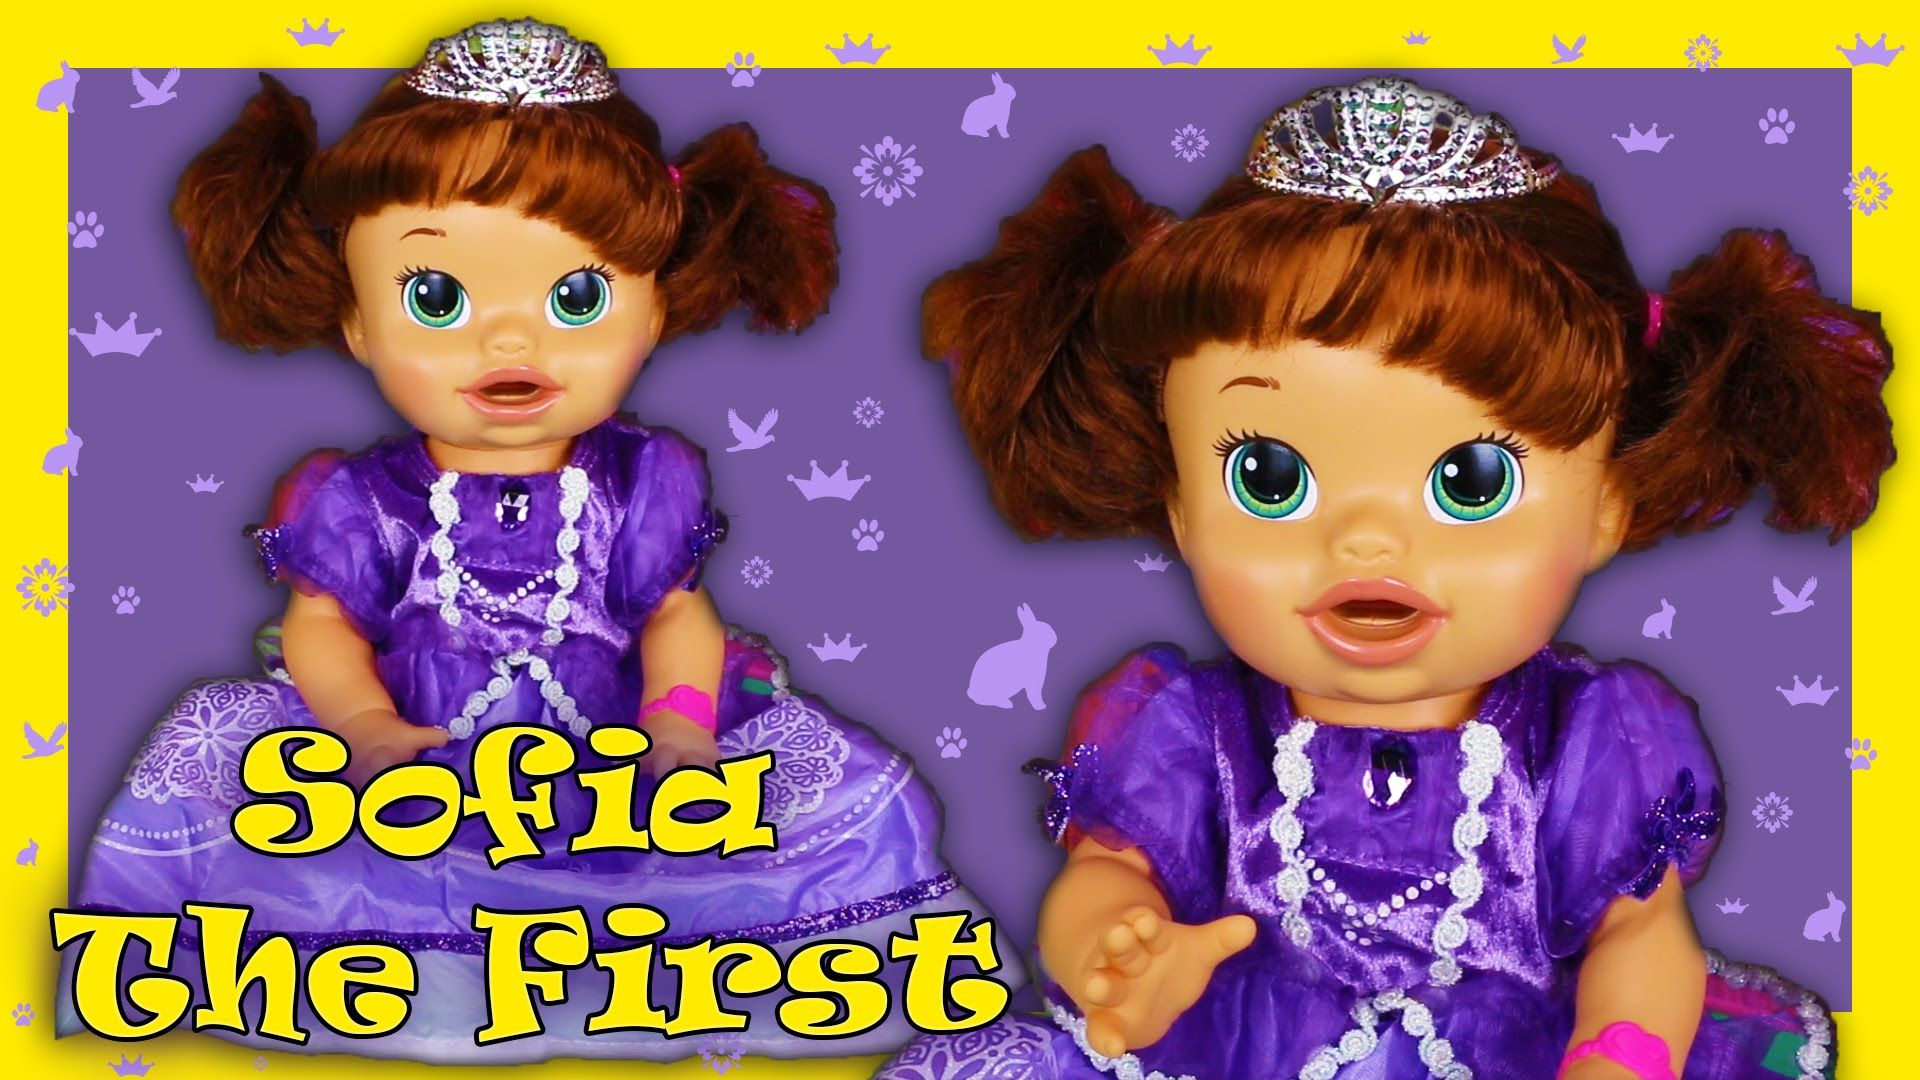 Sofia the First Custom Baby Alive Doll Eats Play Doh Poops Blind